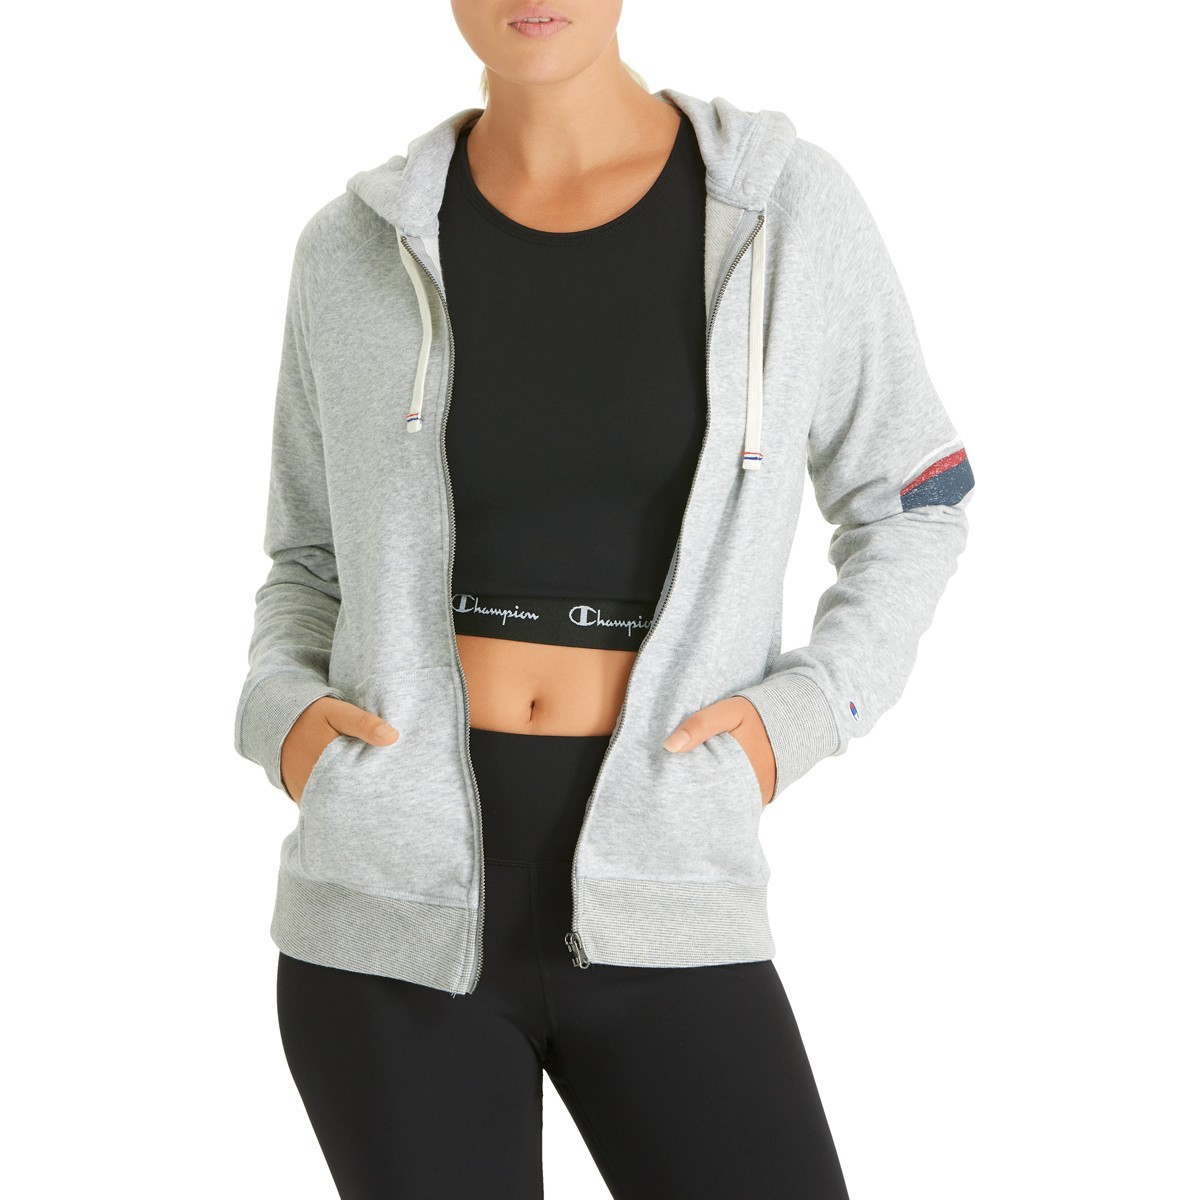 ee45166622f Champion Heritage French Terry Full Zip Womens Hoodie - Oxford Grey  Heather/Silver Print